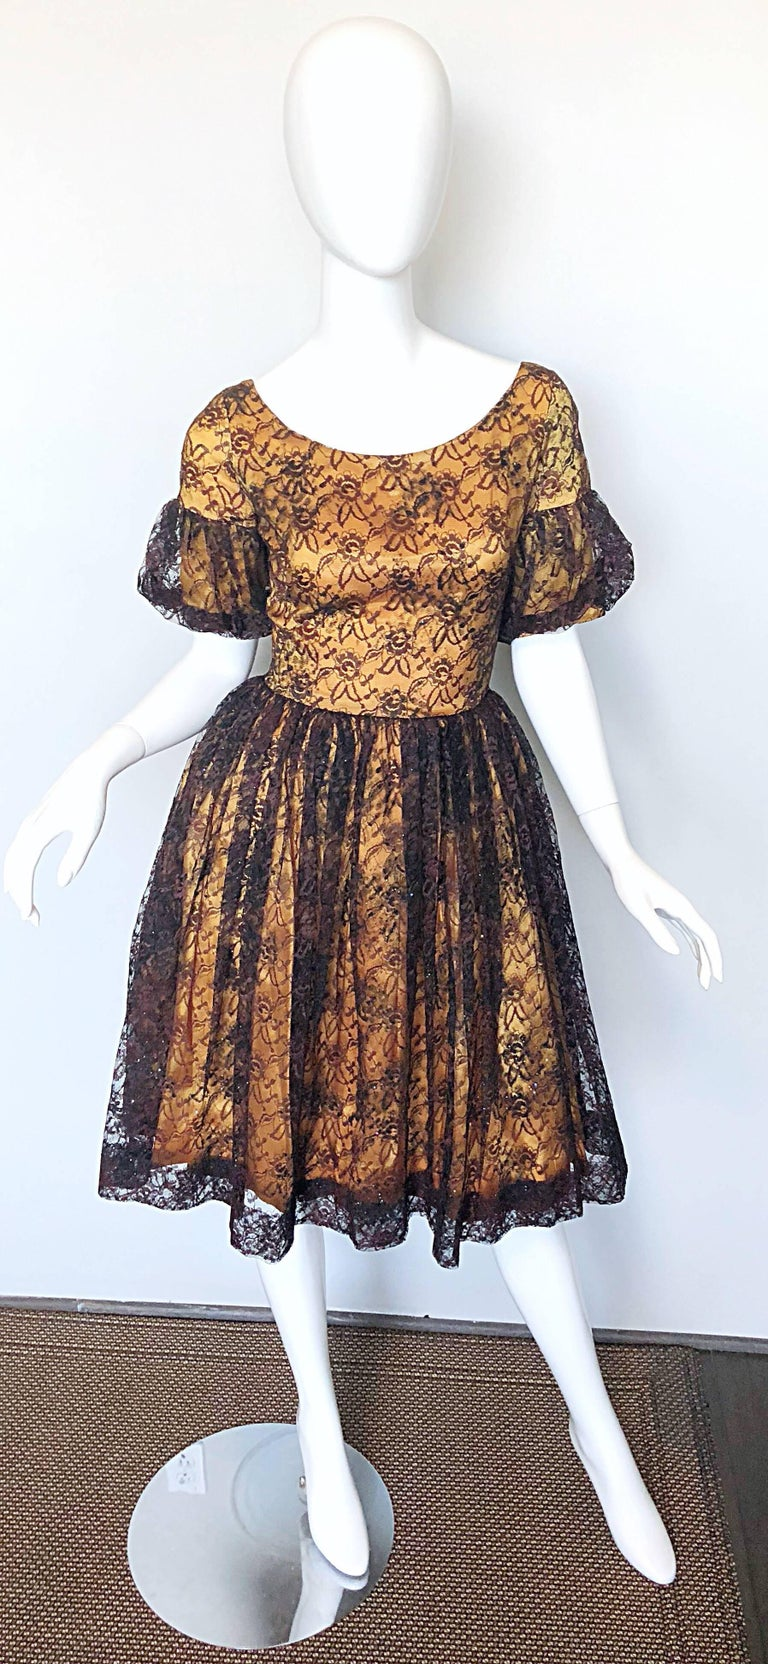 Gorgeous 1950s black and gold silk lace fit n' flare cocktail dress! Features luxurious black French lace with a golden satin underlay, with sparkles of colorful glitter sporadically thorughout. Pretty flounced sleeves. Fitted bodice with a